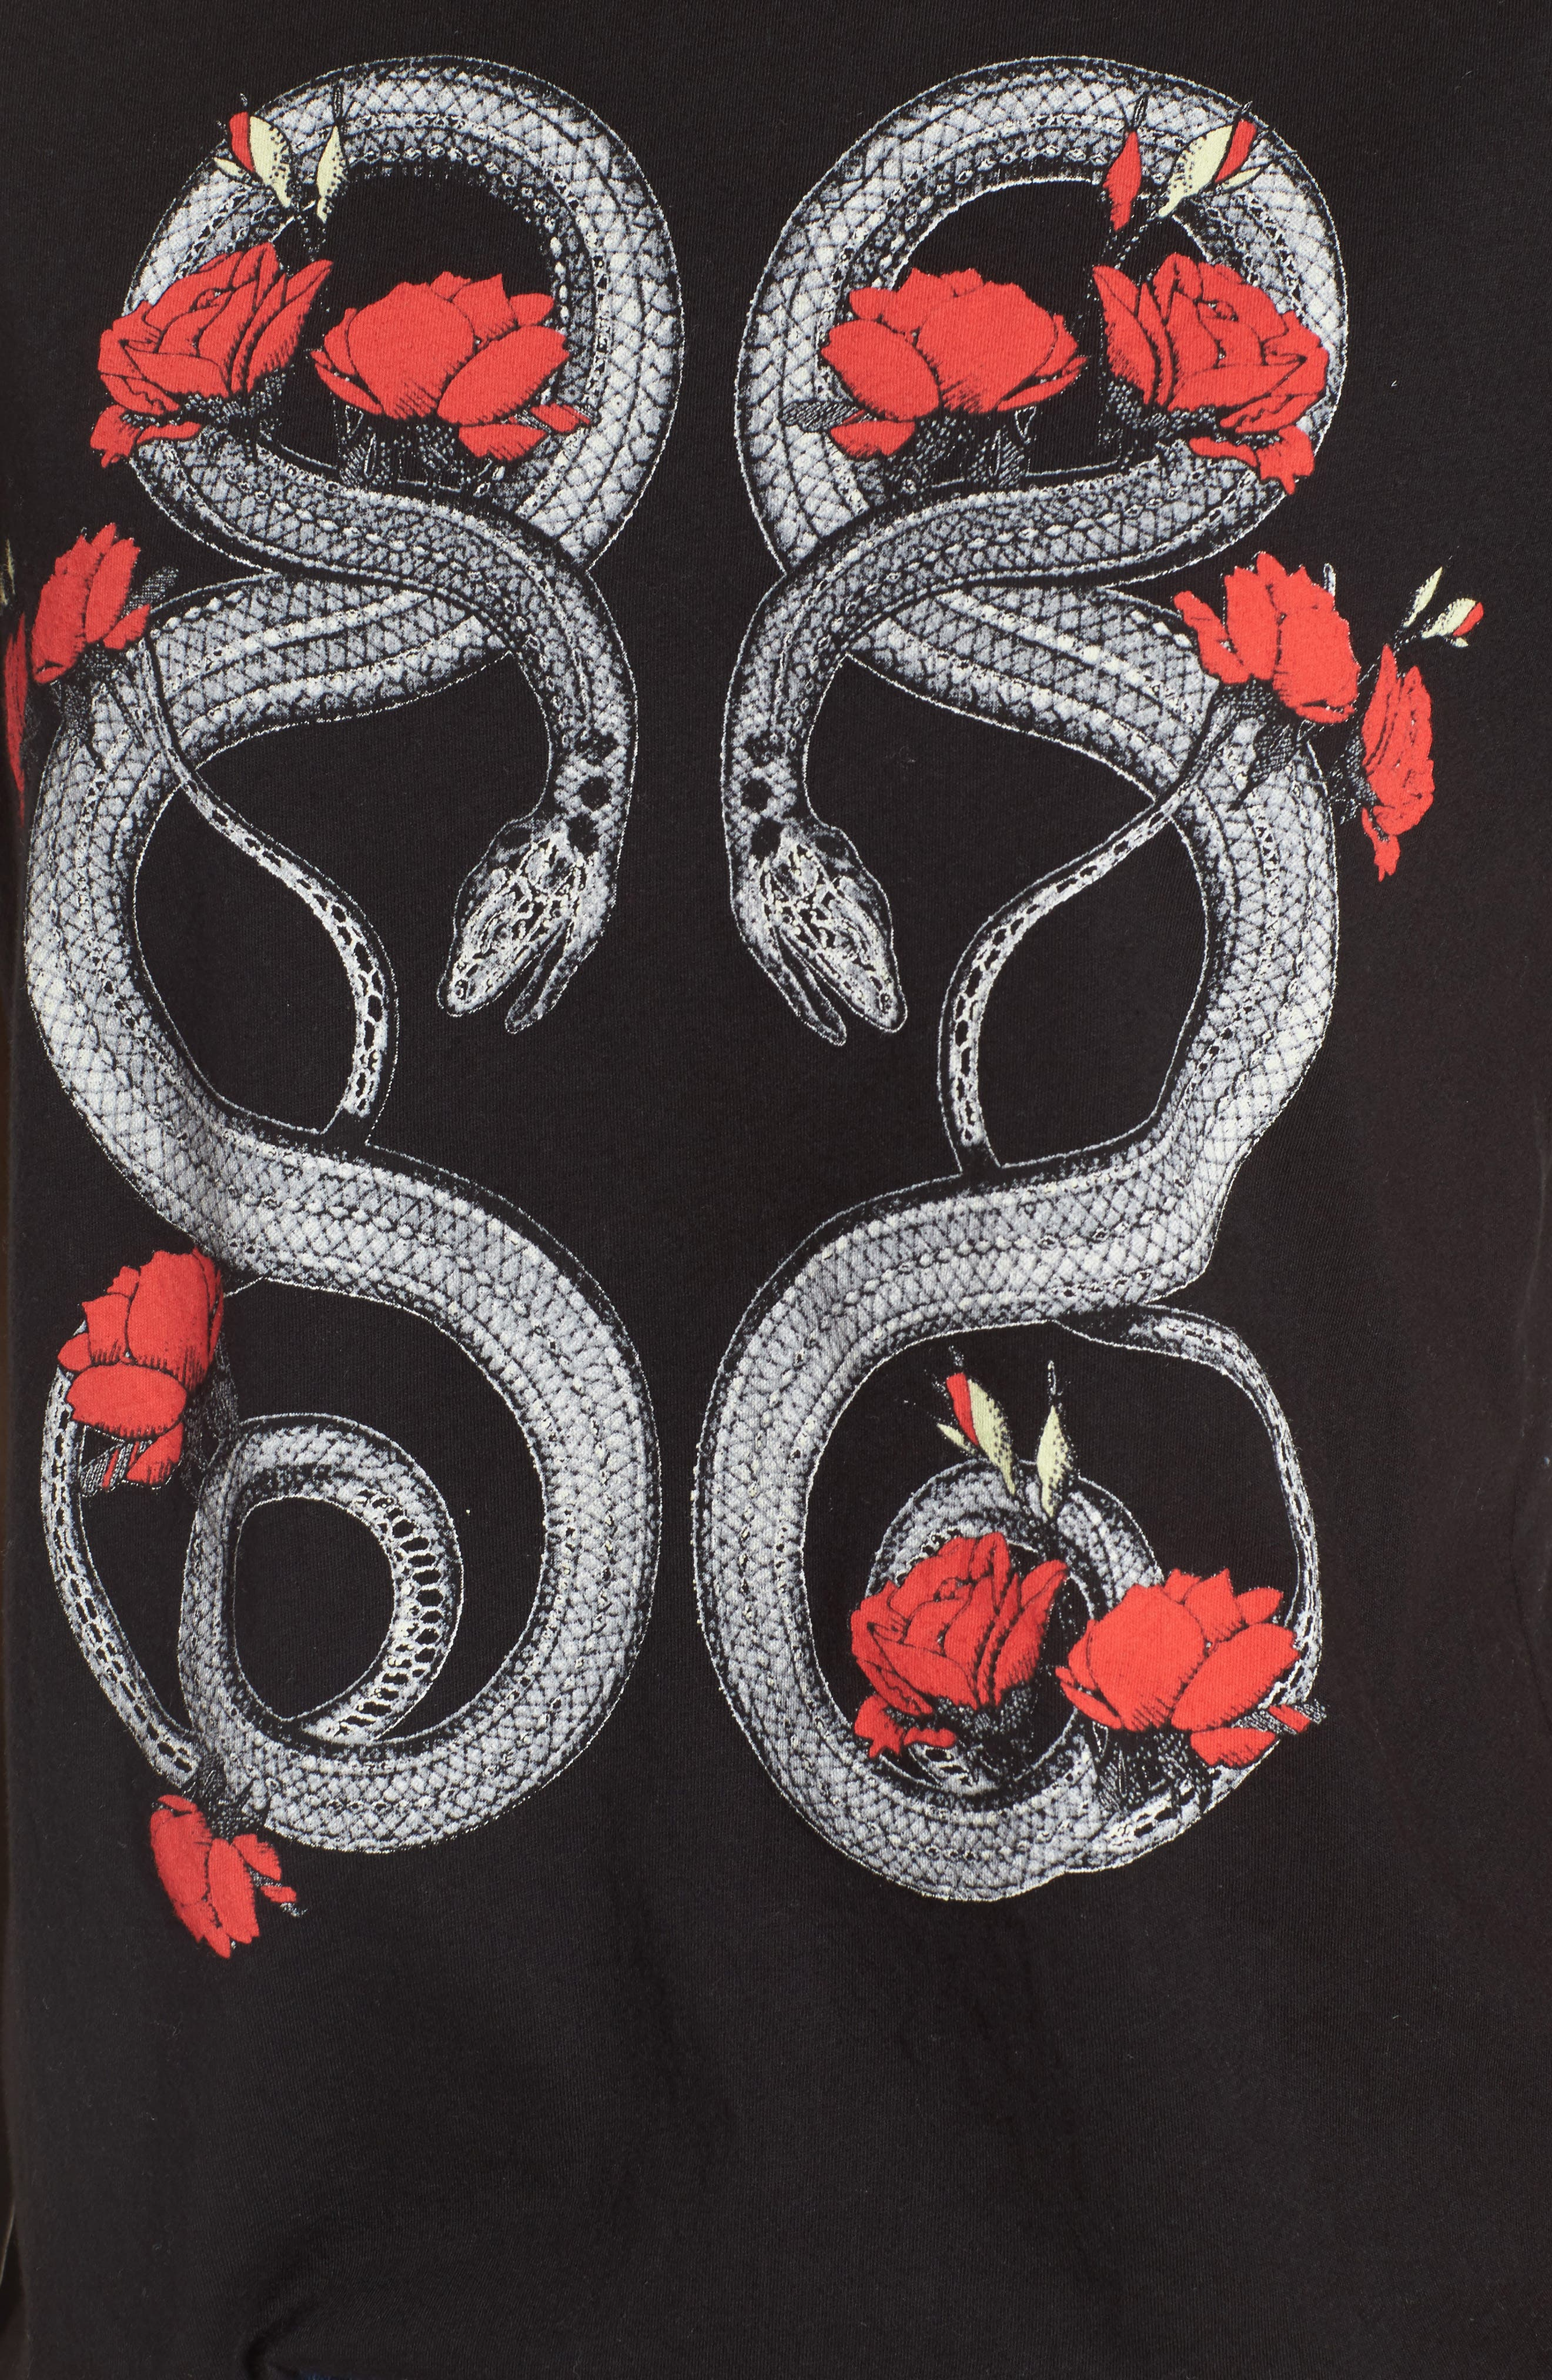 Red Snakes Tee,                             Alternate thumbnail 5, color,                             Clean Black